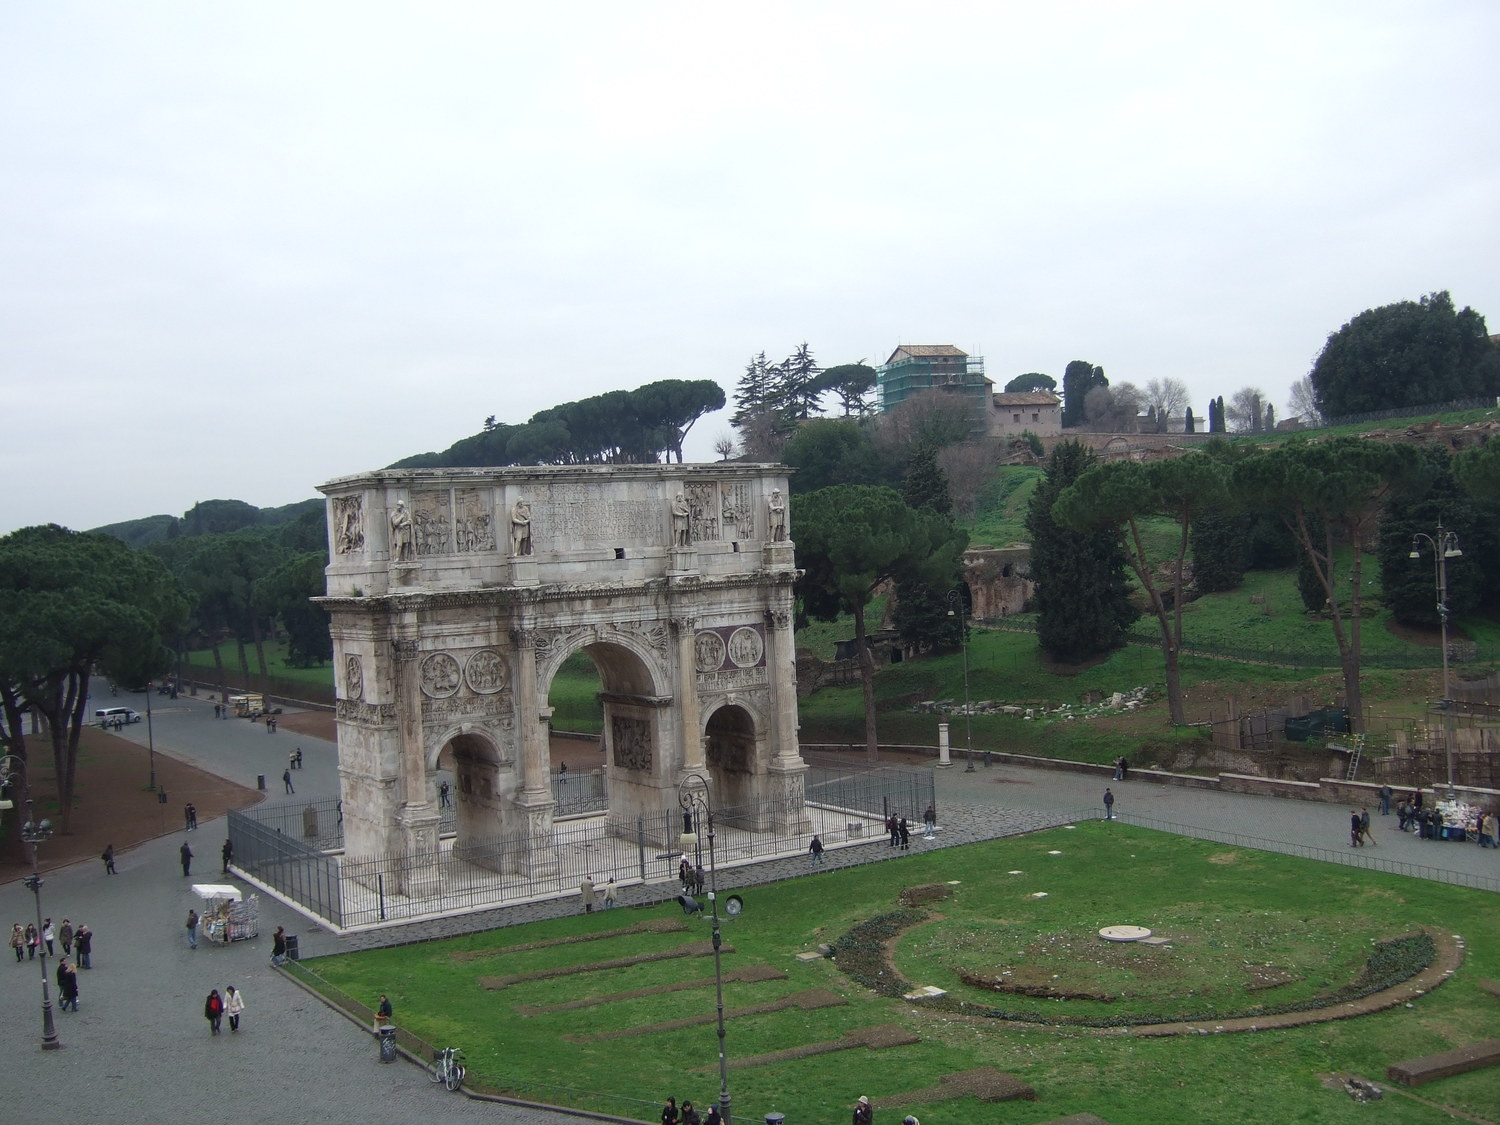 Rome's monuments. The Arch of Constantine and the view to the Palatine HillRome's monuments. The Arch of Constantine and the view to the Palatine Hill